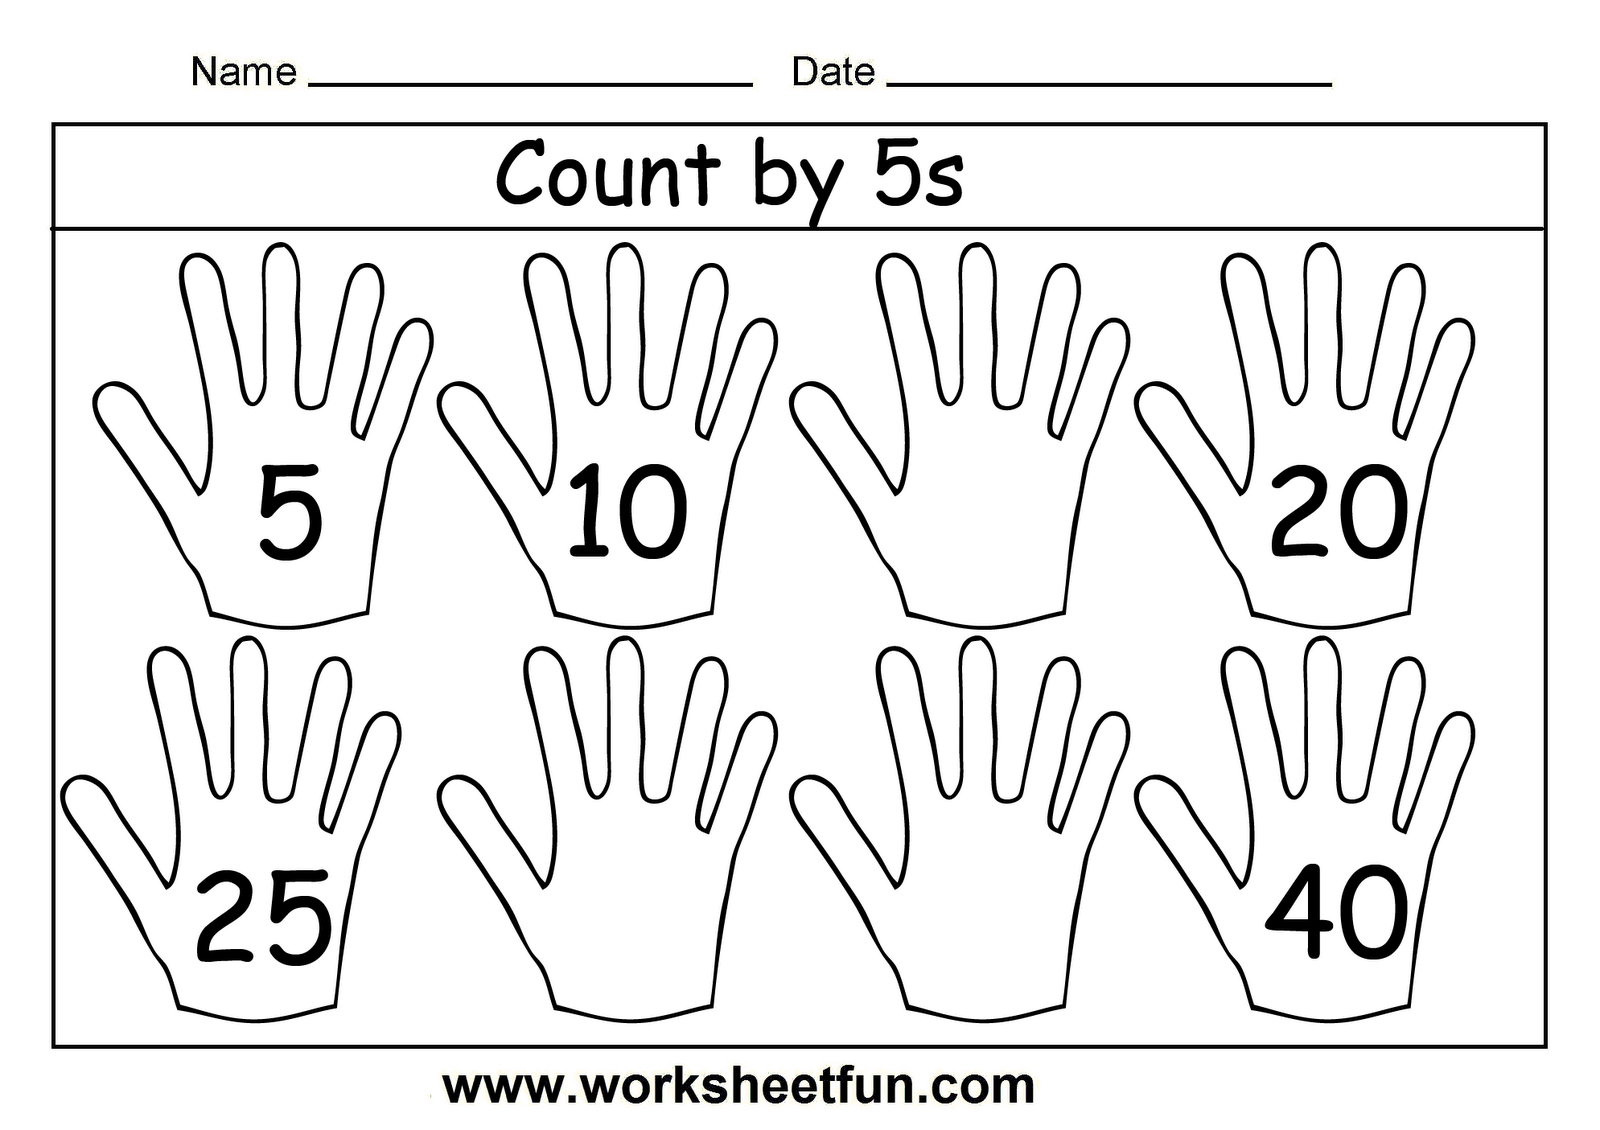 Count By 5s